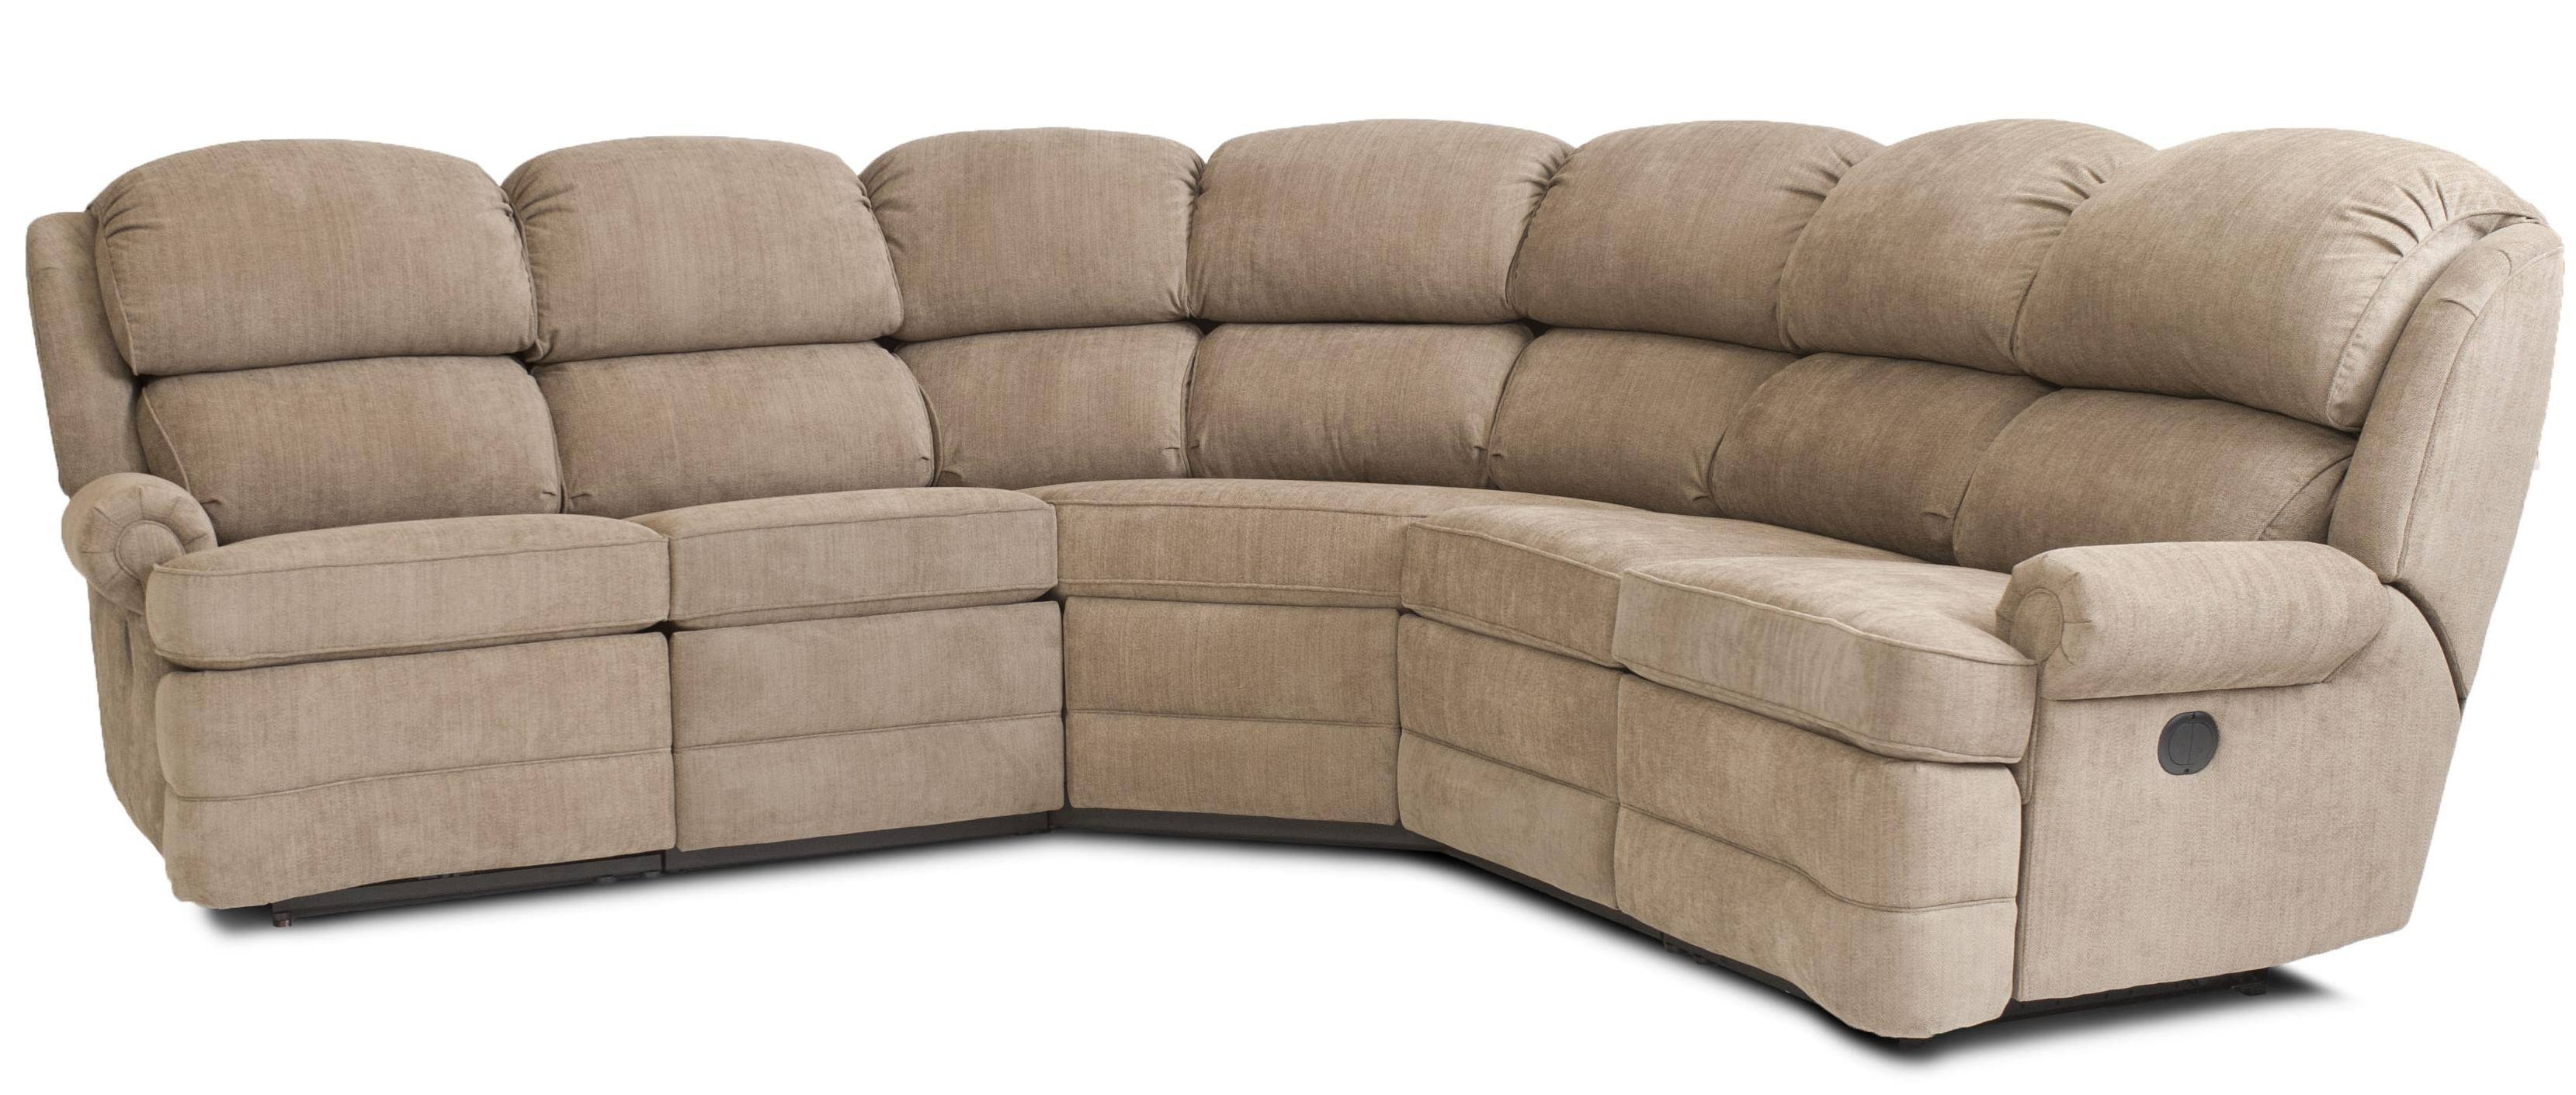 Furniture: Sectional Reclining Sofas | Bonded Leather Sectional throughout Small Sectional Sofa (Image 13 of 30)